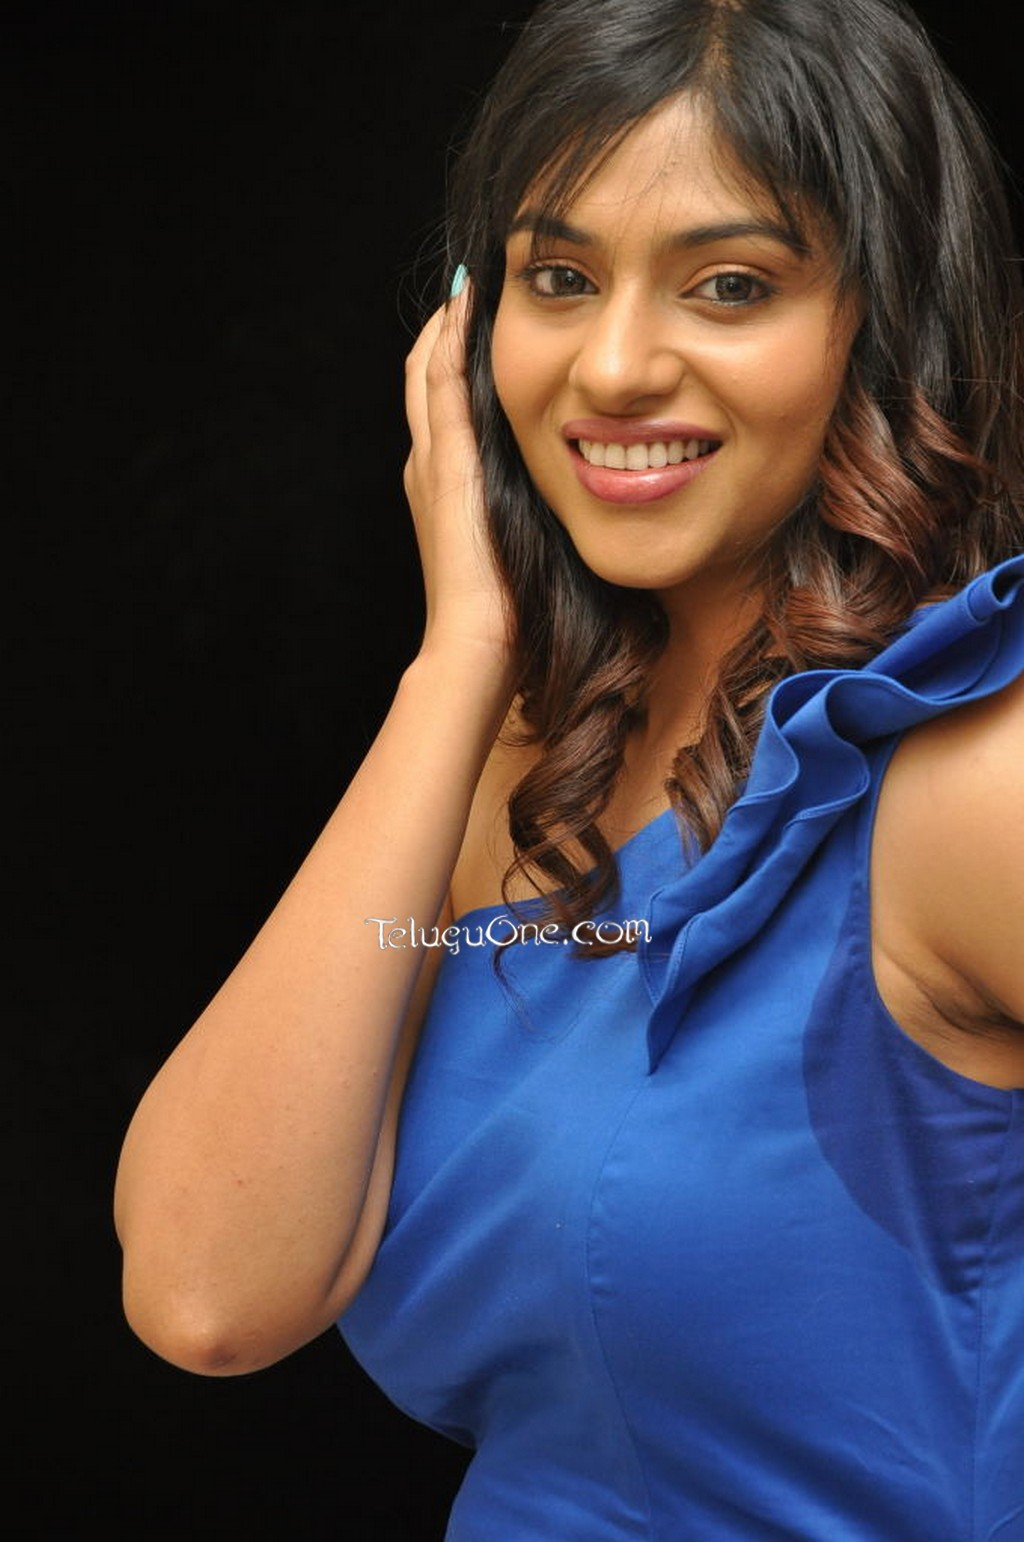 ... Photos | Telugu Actress | Telugu Actres | Telugu Actress Wallpapers